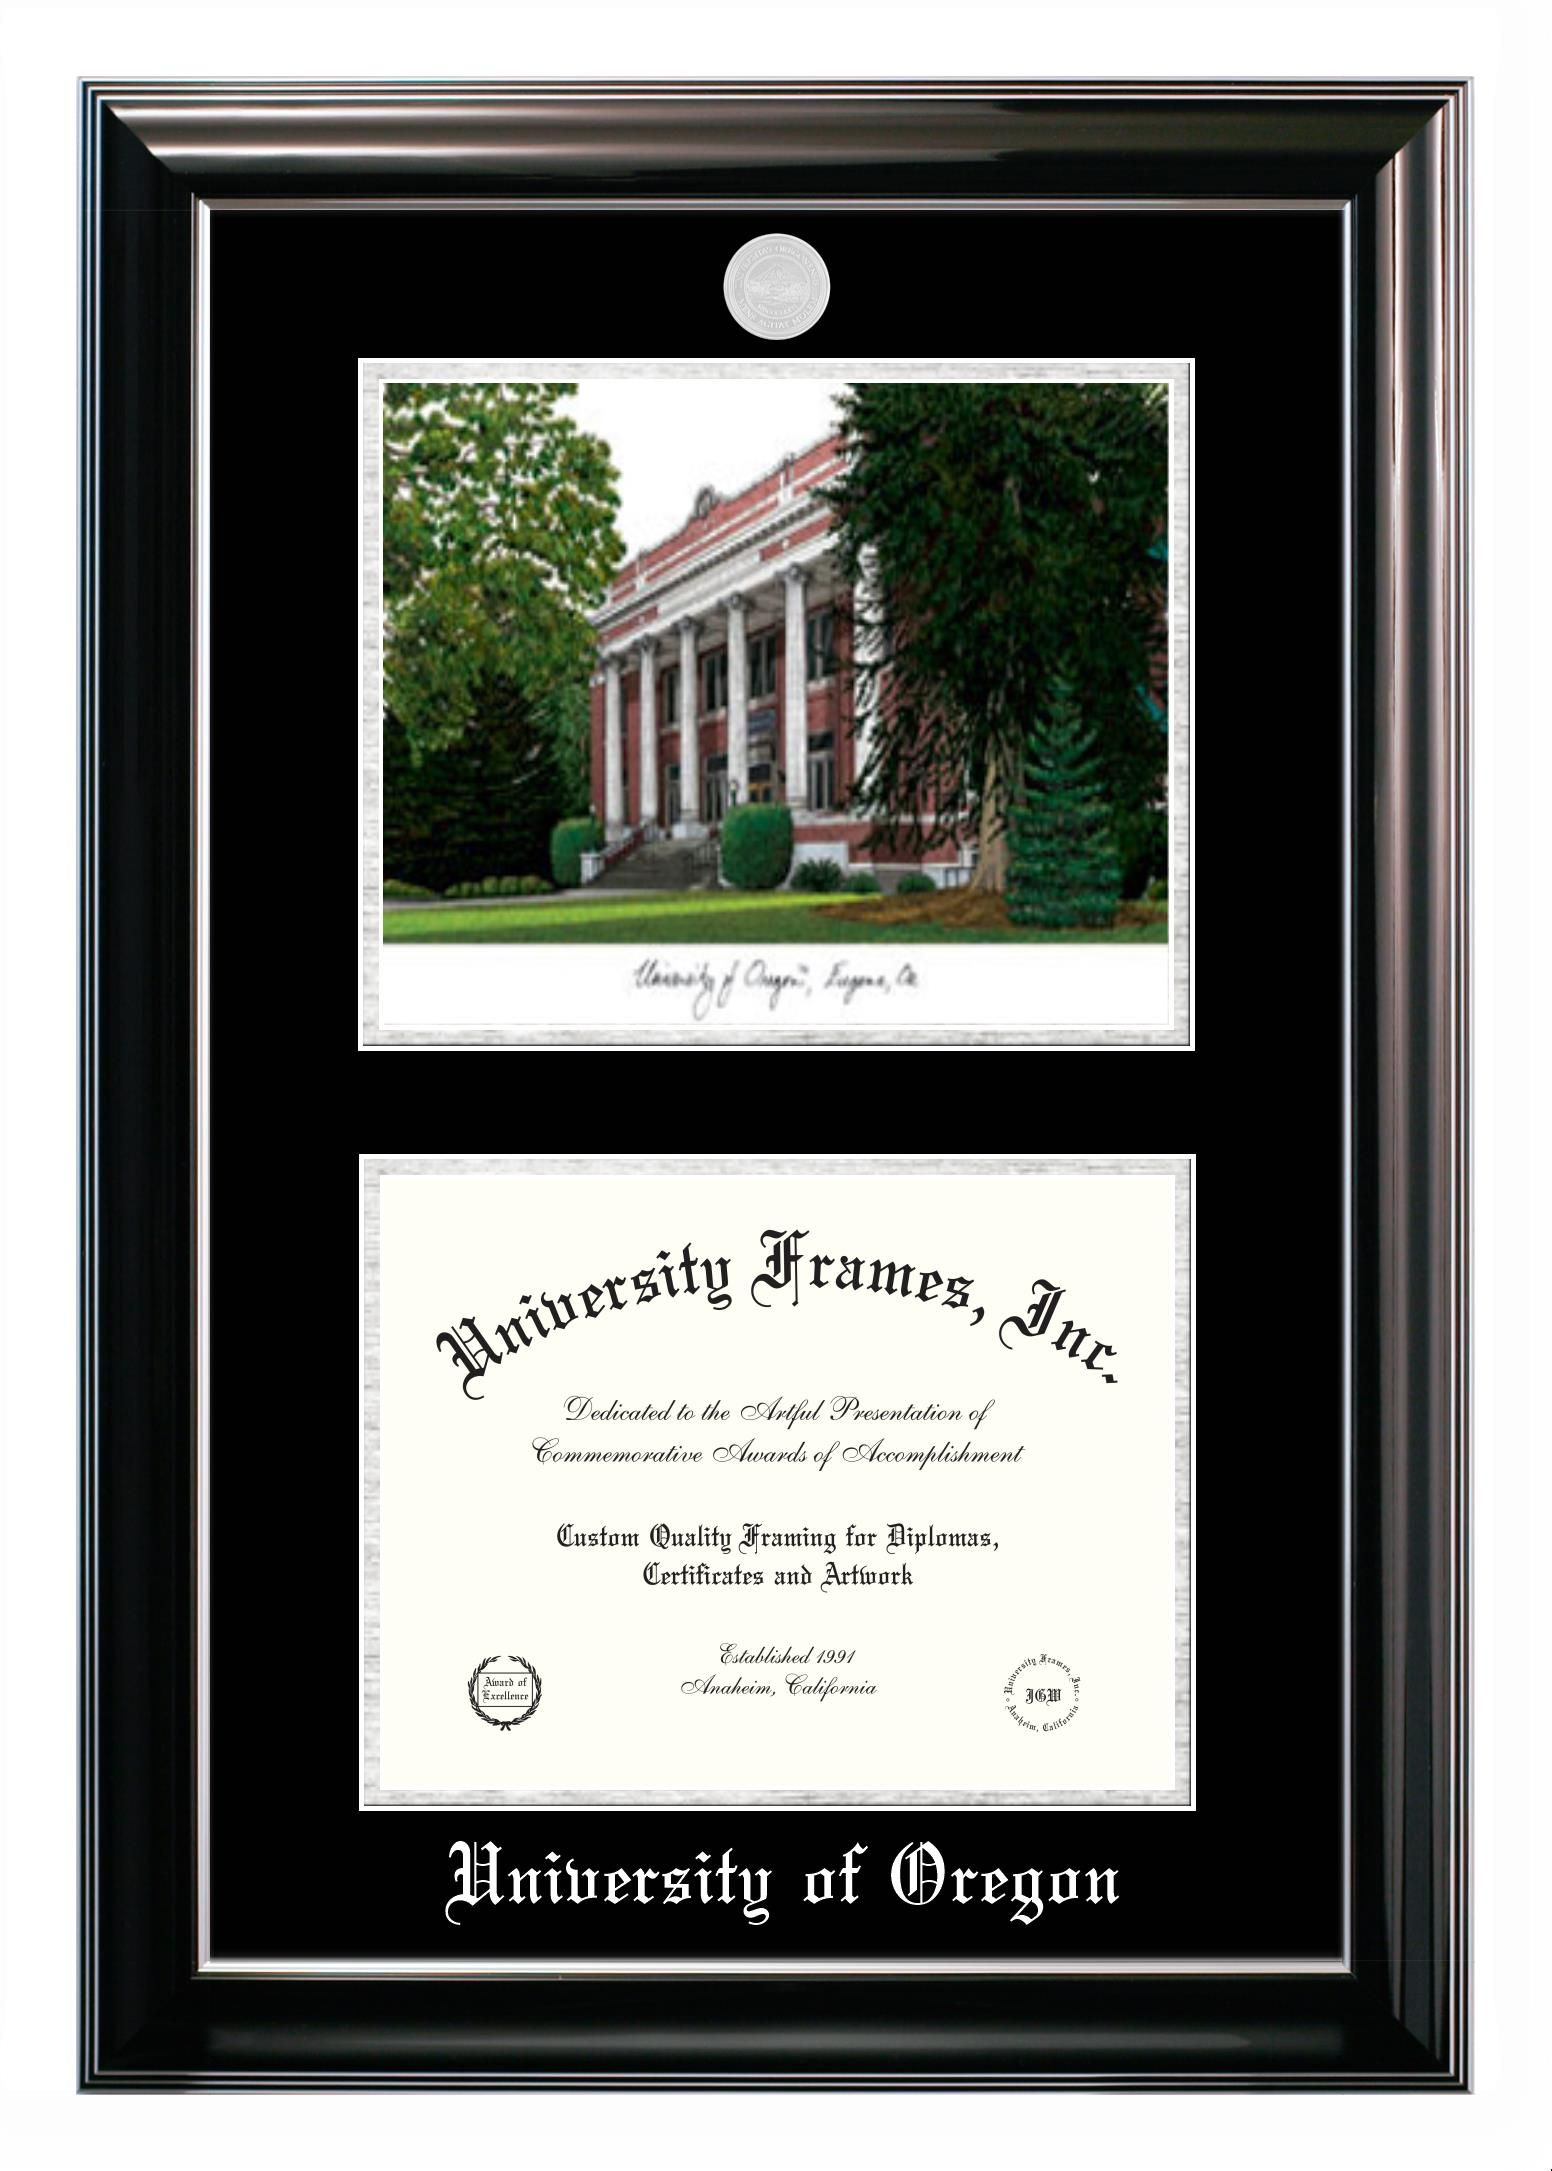 University Of Oregon Diploma Frame With Campus Image Diploma Frame Campus Images Degree Frame